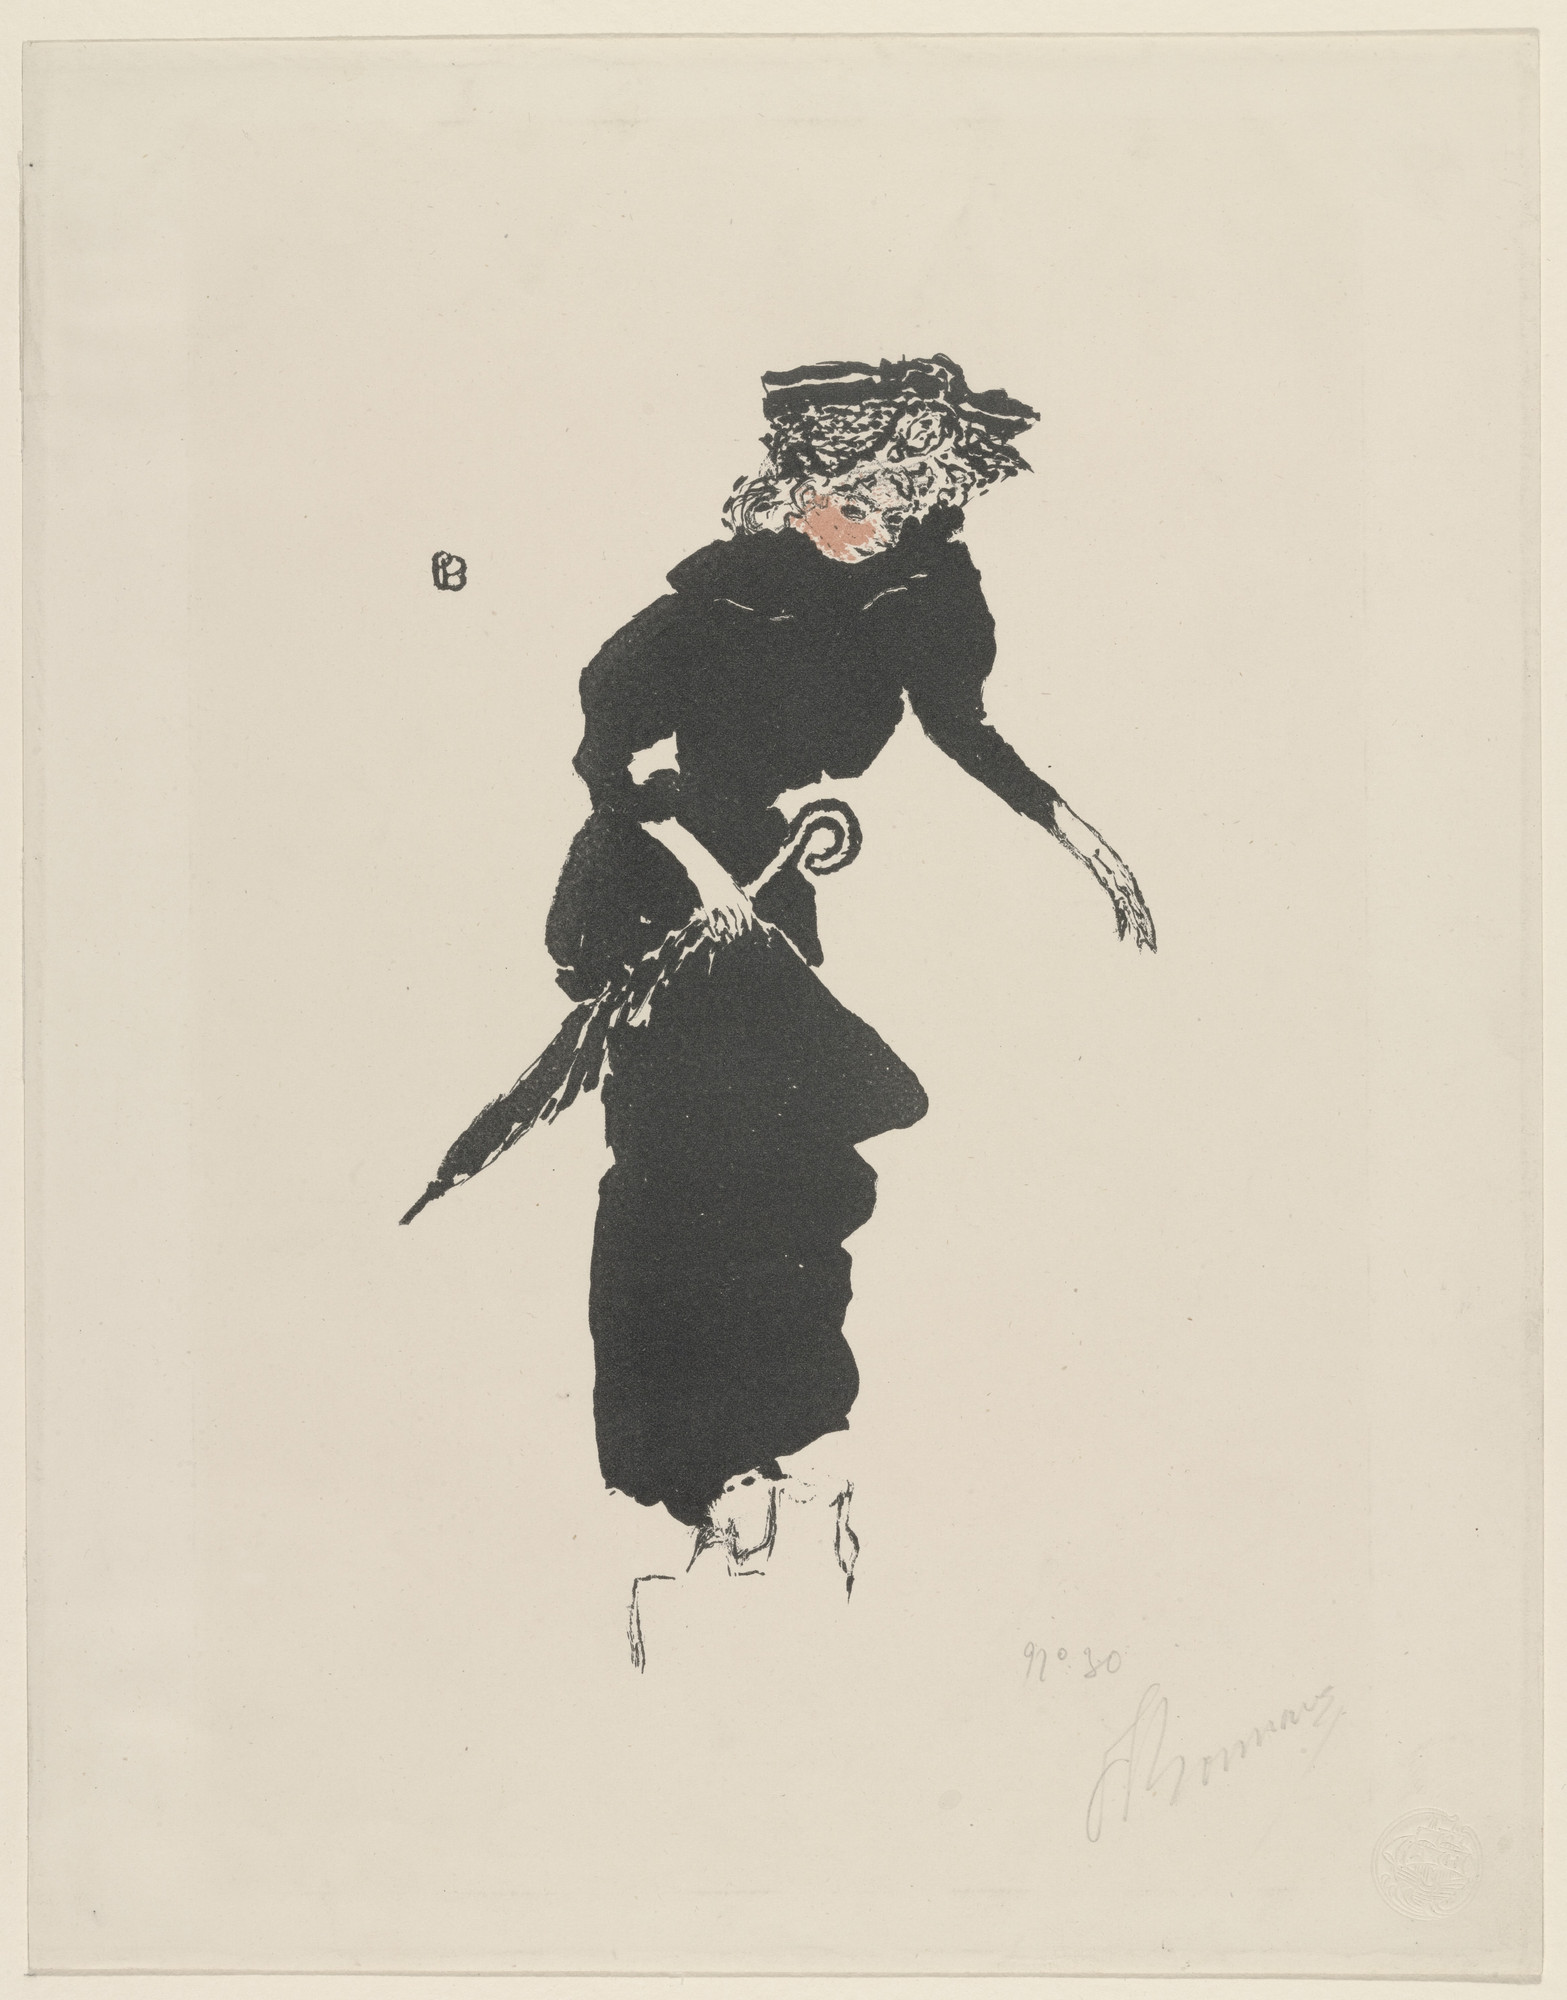 Pierre Bonnard. Woman with Umbrella (Femme au parapluie) from the portfolio The Album of the White Review (L'Album de la Revue Blanche). 1895